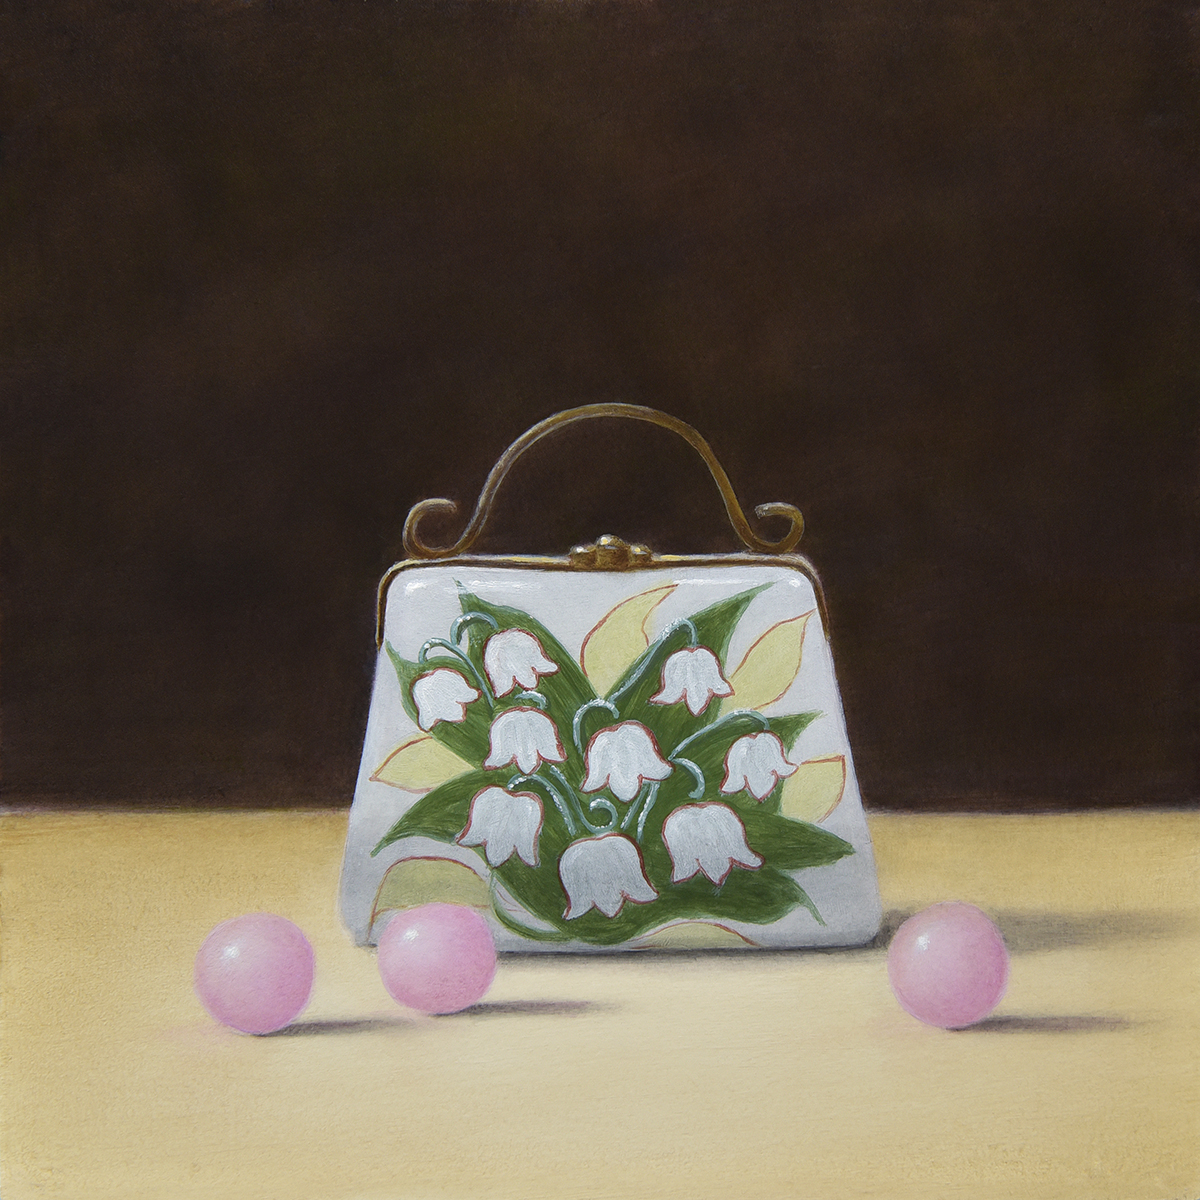 """""""Lily of the Valley Purse Porcelain Pillbox and Pink Chocolate Balls"""""""